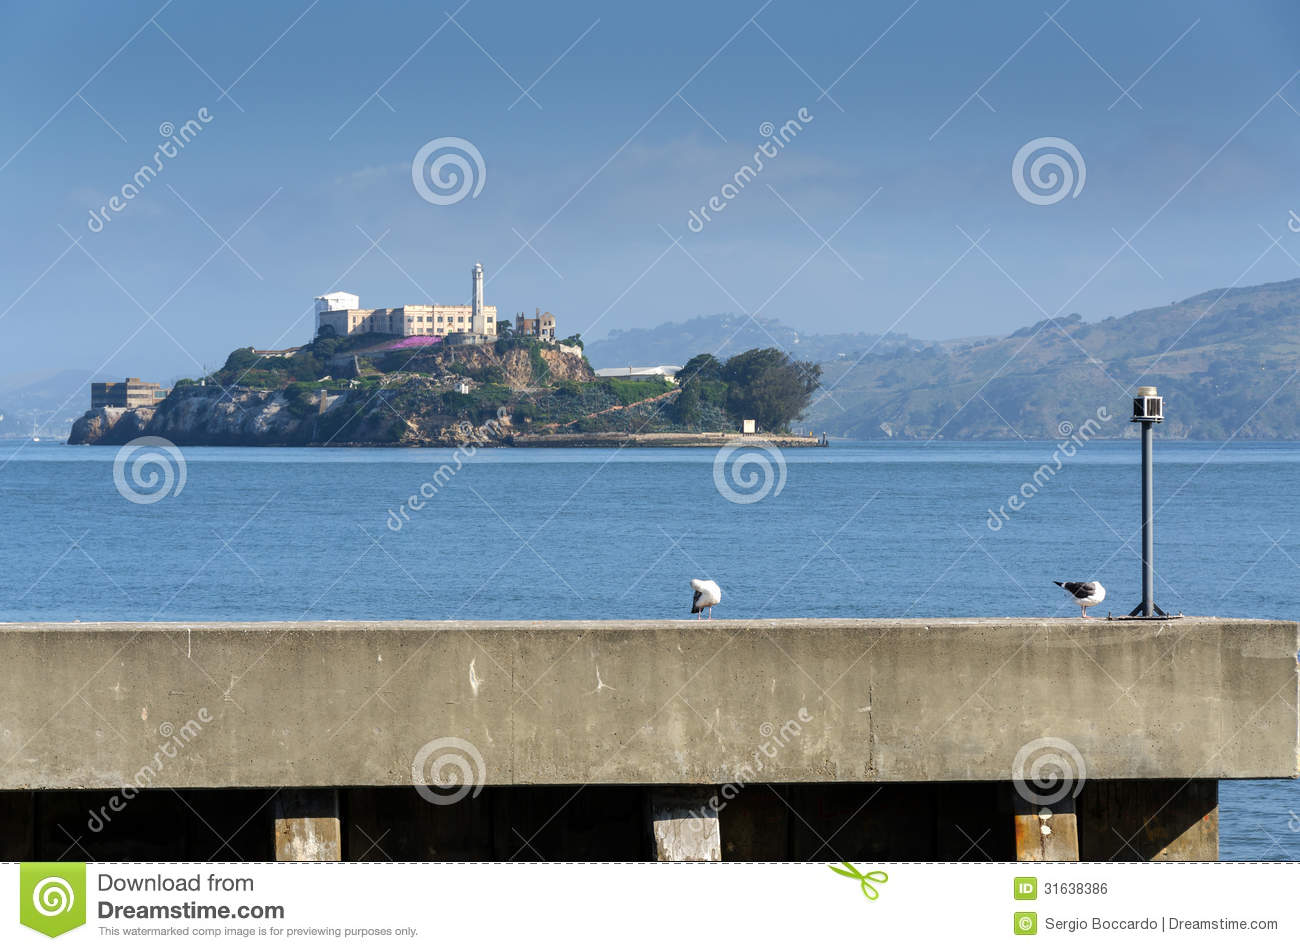 an overview of the history of the best correctional facilities in the united states the alcatraz San quentin is also among the most well-known prisons in the united states   the prison's origins date to the california gold rush, a period that roughly  spanned from  notably charles manson, who was arguably its most famous  inmate  prison le temple alcatraz attica correctional facility auburn state  prison.